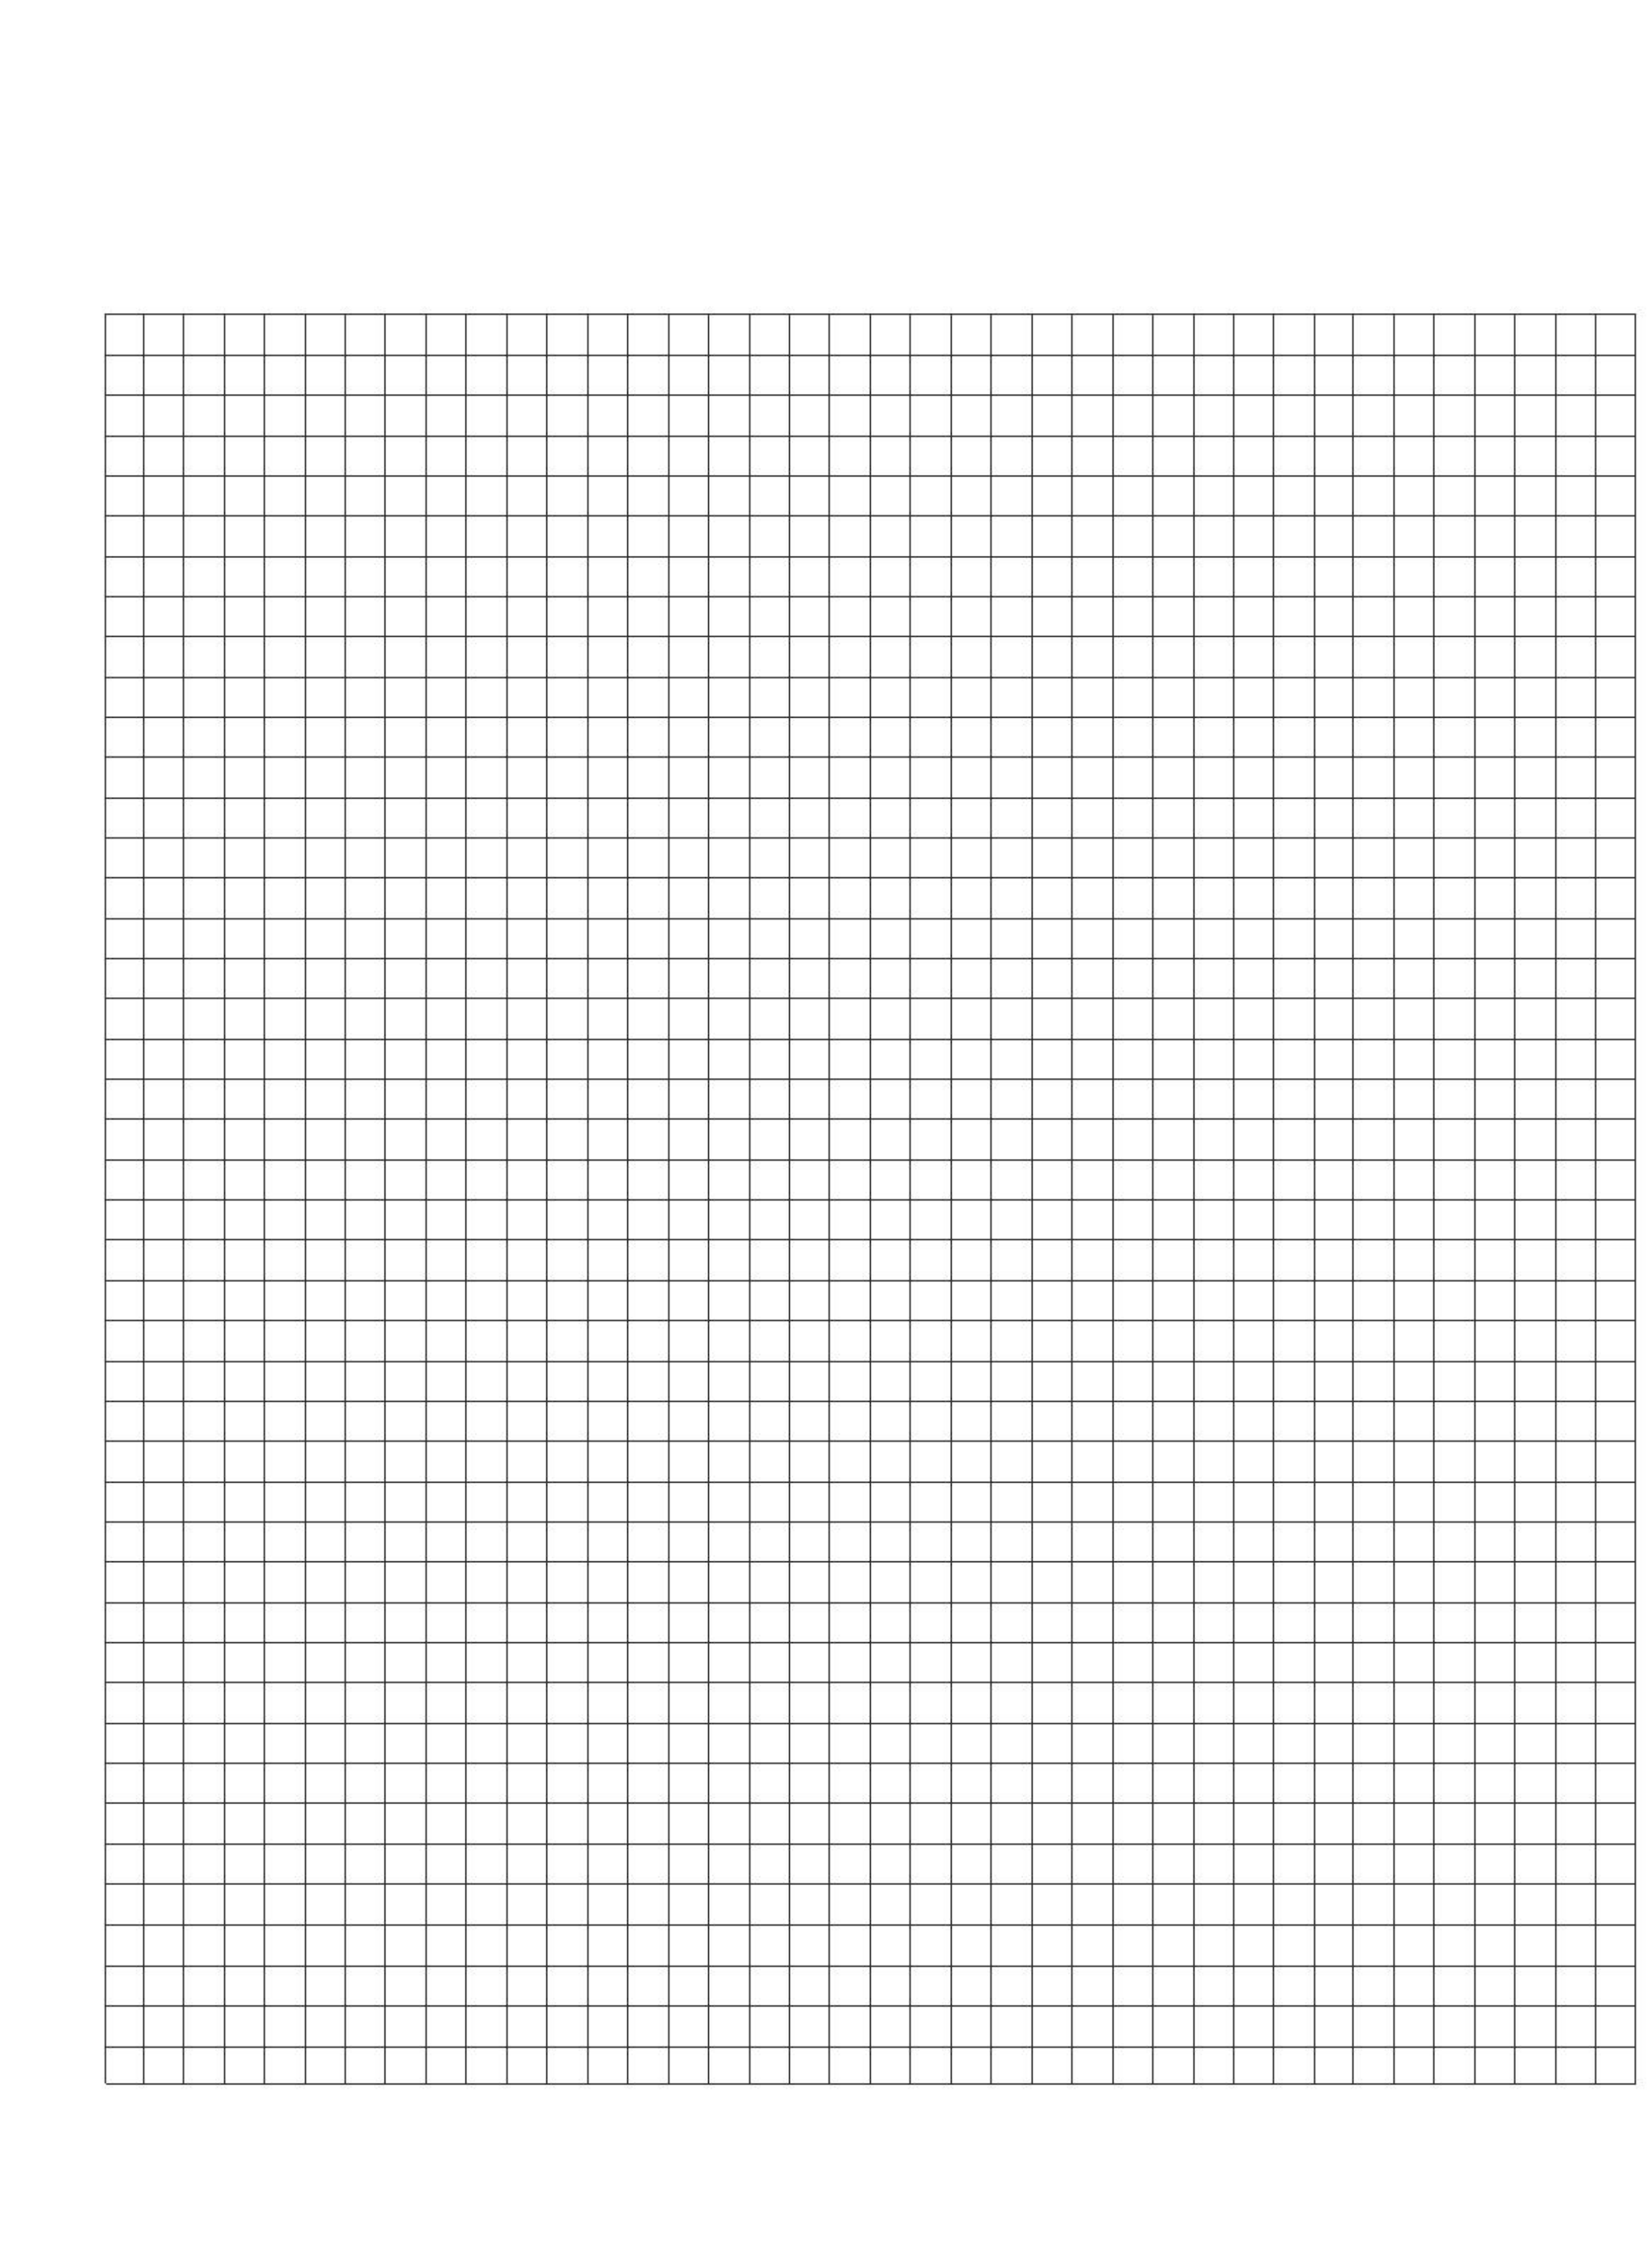 Centimeter graph paper template idealstalist half centimeter graph paper template free download toneelgroepblik Choice Image